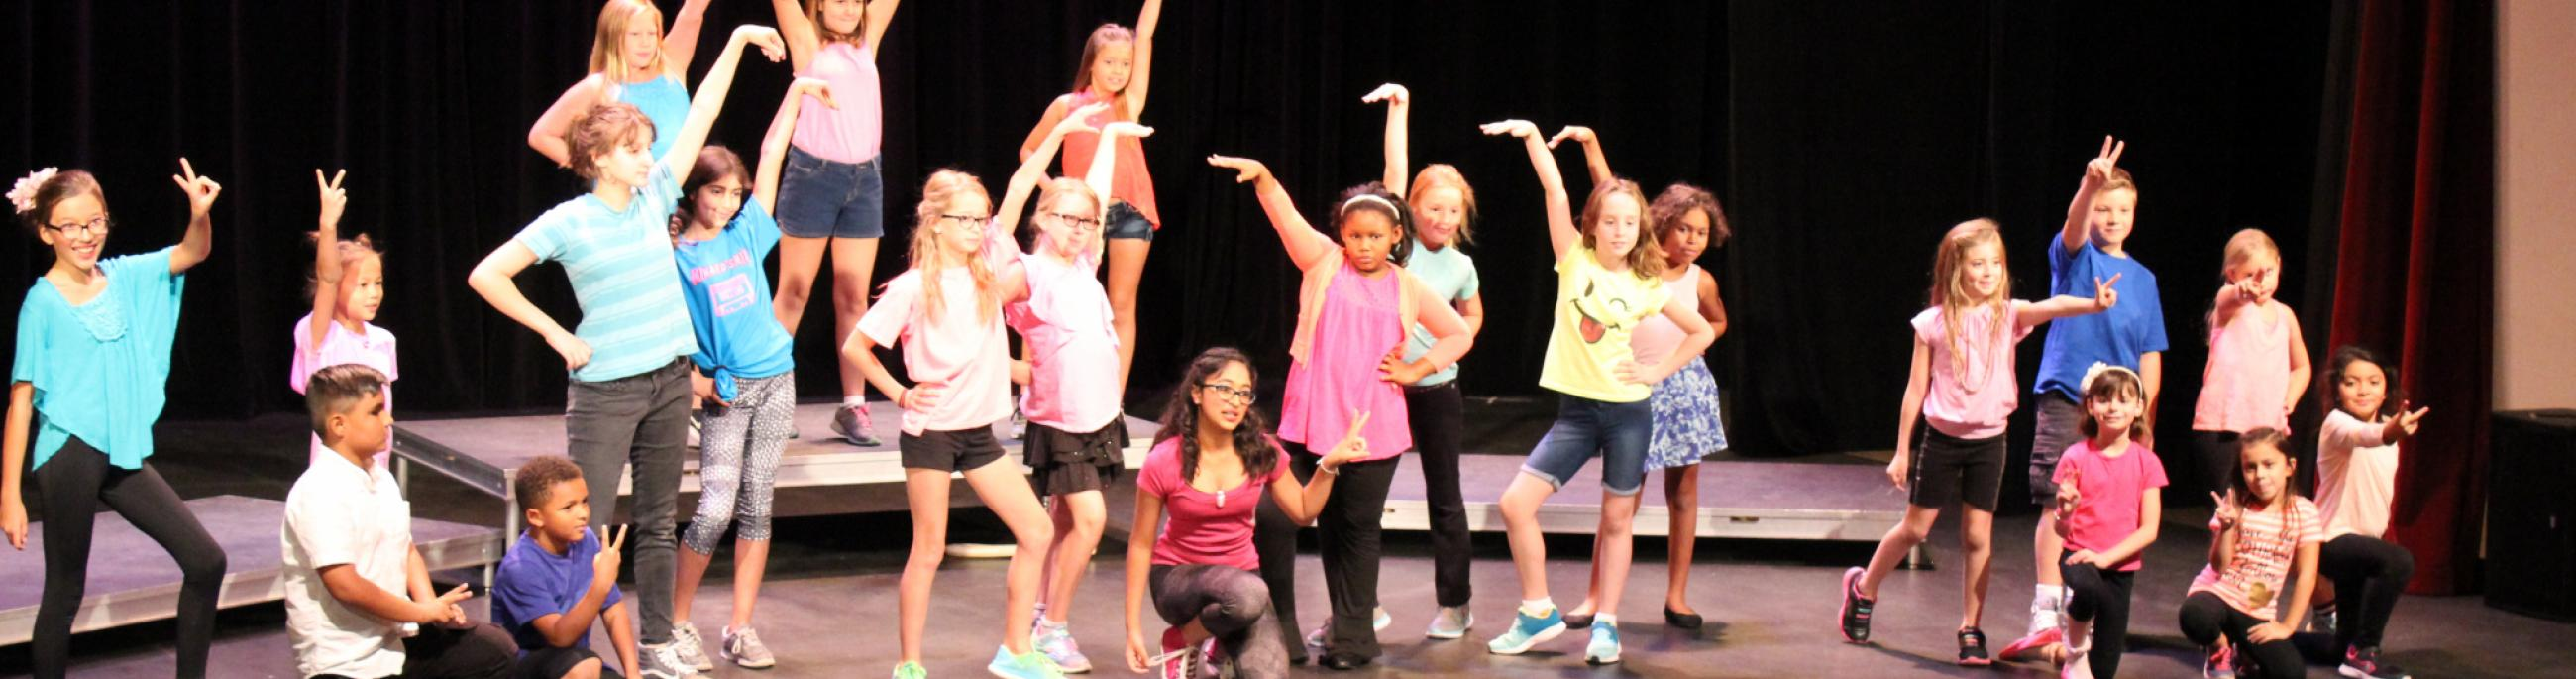 Musical theater camps taught by professional artists are offered during the summer and school intersessions to provide youth with a creative camp experience.